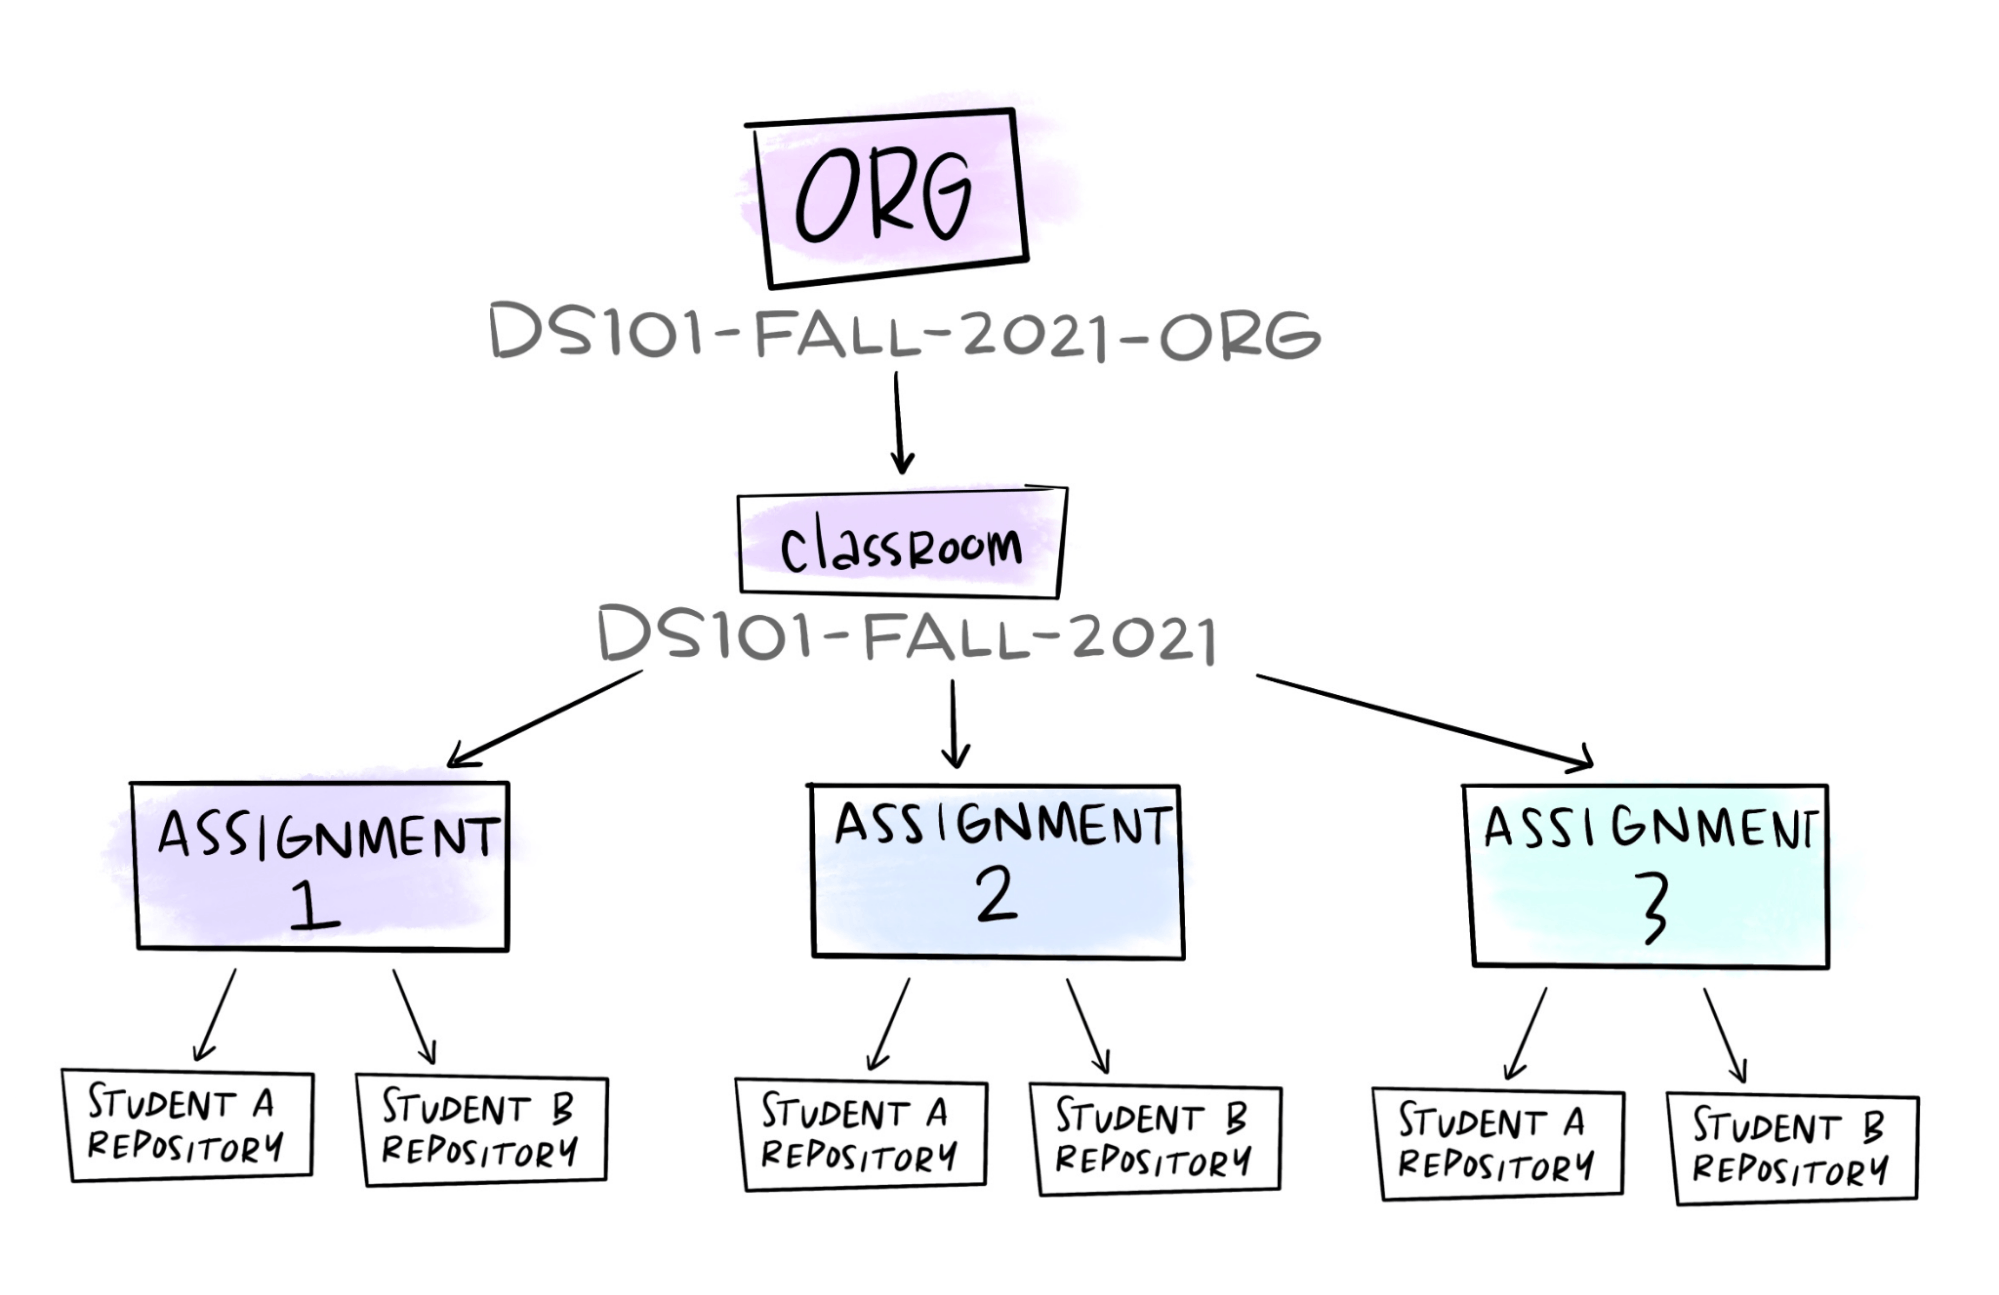 example organization, classroom, and assignment structure